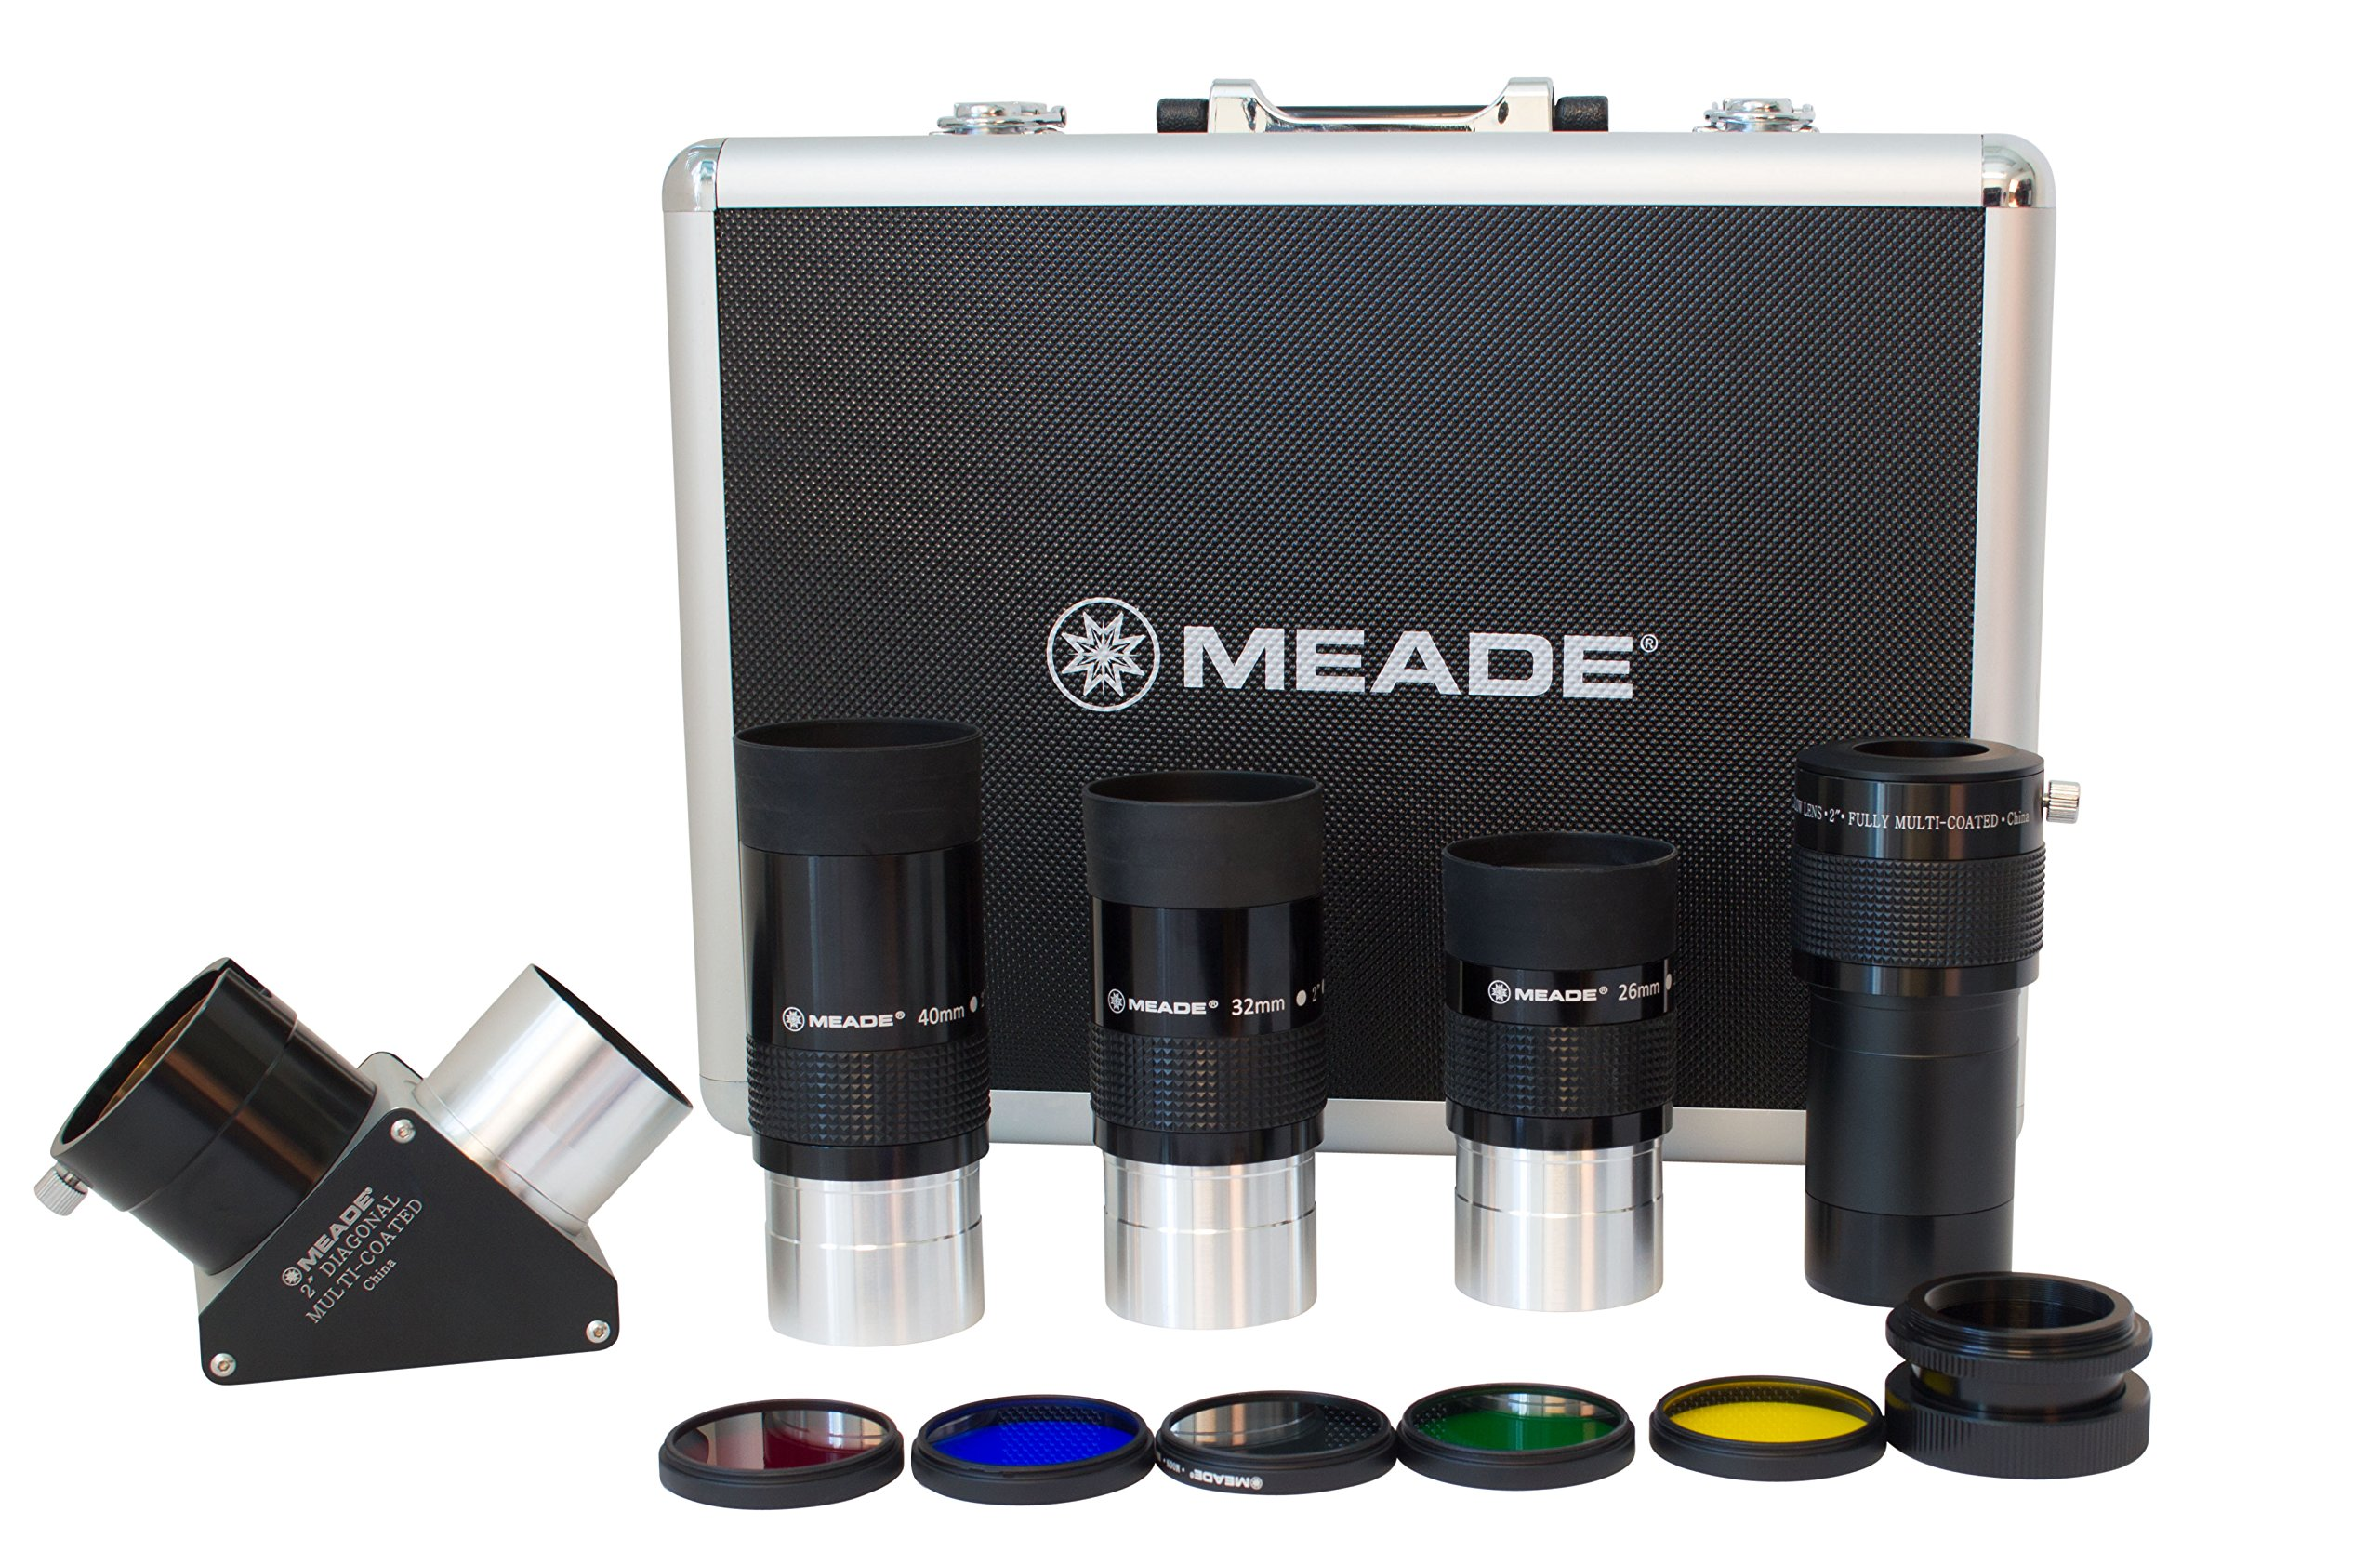 Meade Instruments 607010 Series 4000 2-Inch Eyepiece and Filter Set (Black) by Meade Instruments